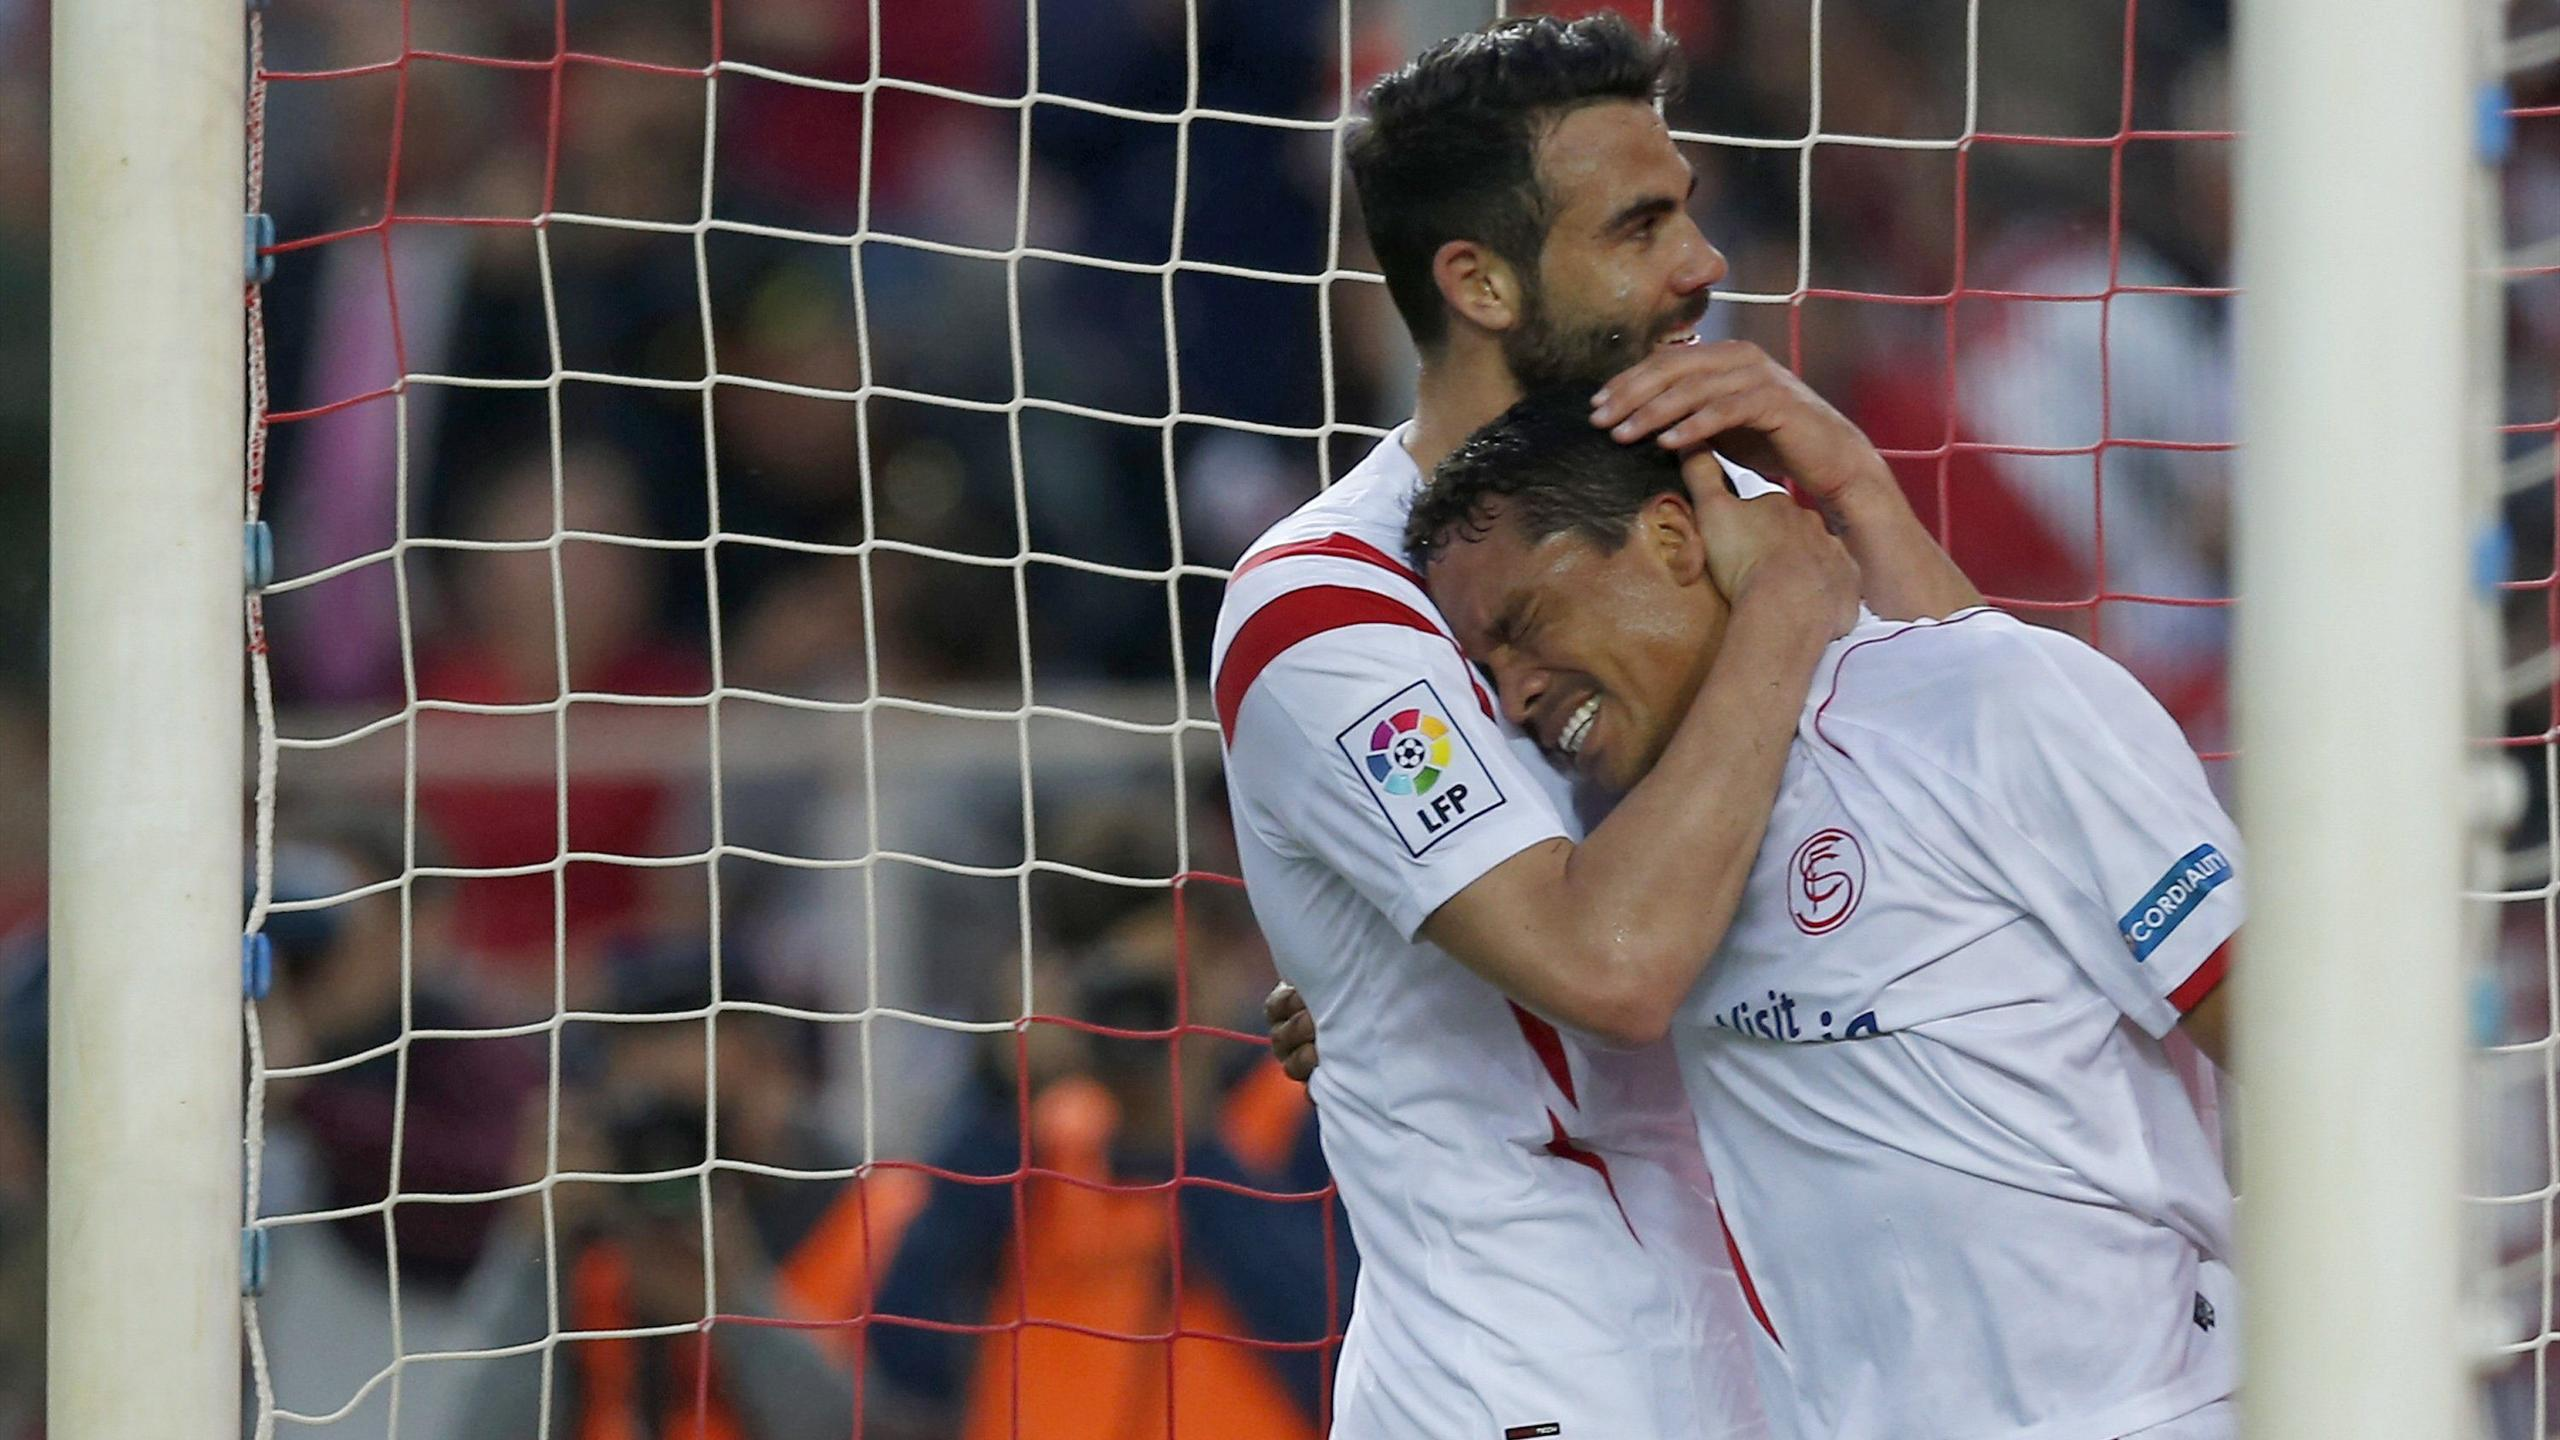 Video: Sevilla vs Elche